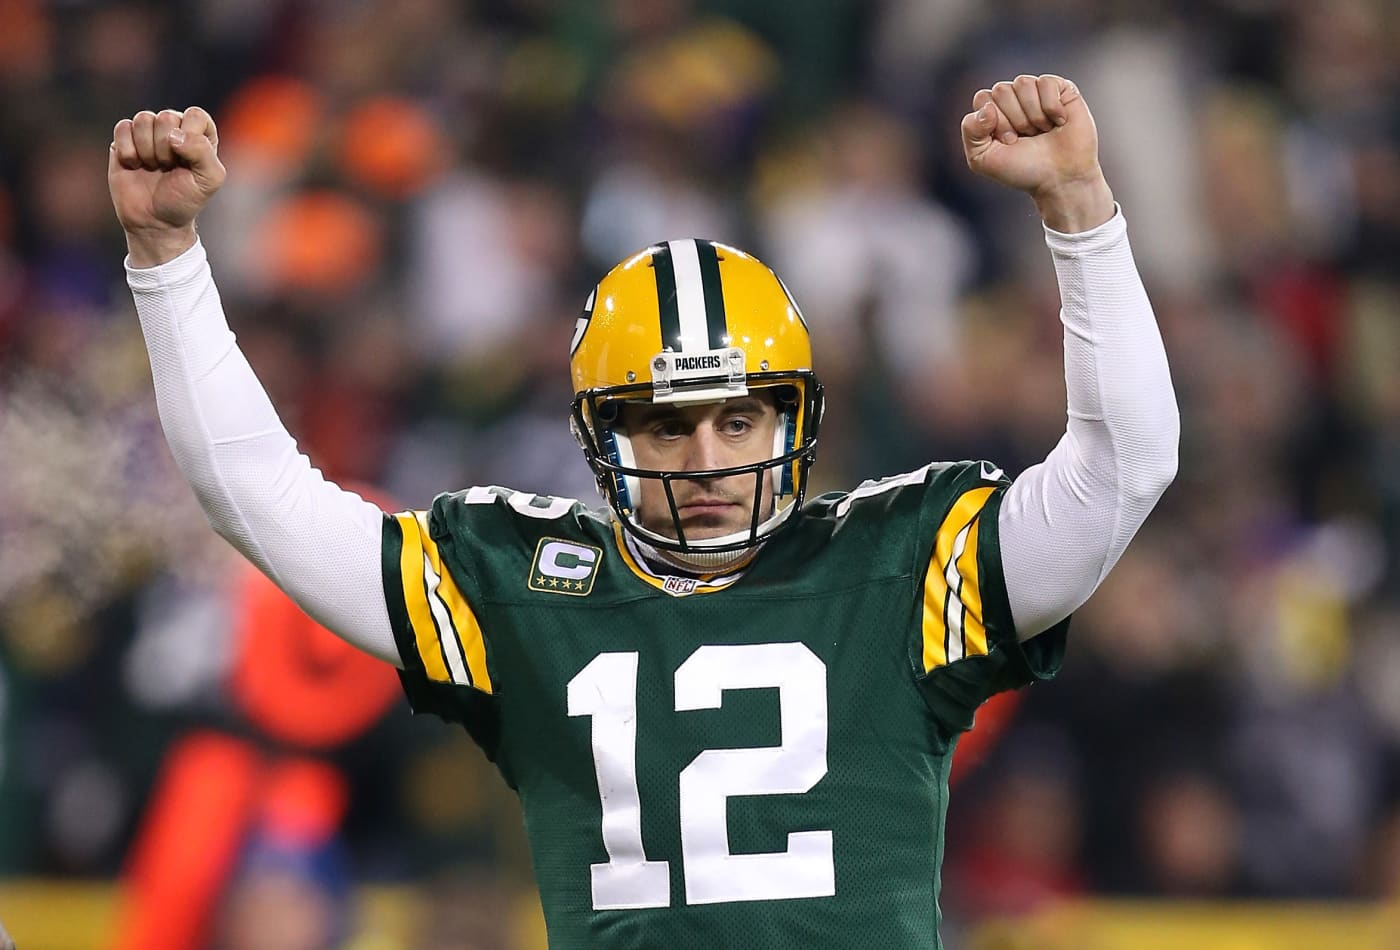 d3f4f221 NFL's highest-paid player Aaron Rodgers once almost quit football